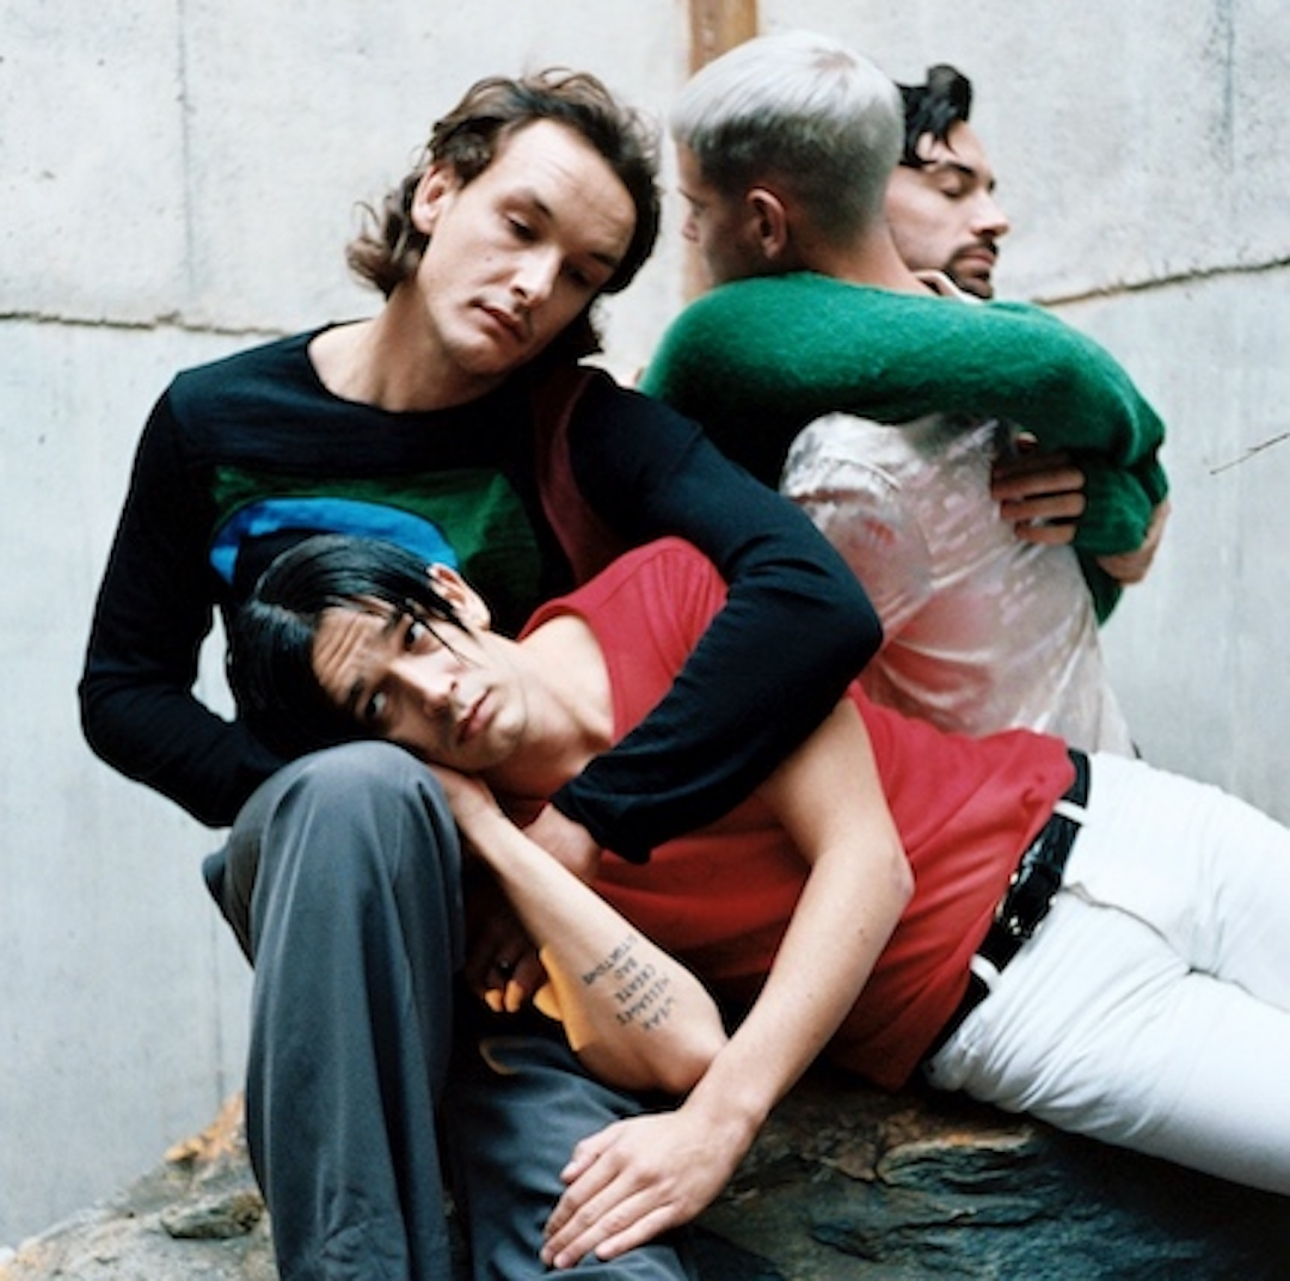 The 1975 will perform at the BRIT Awards ceremony